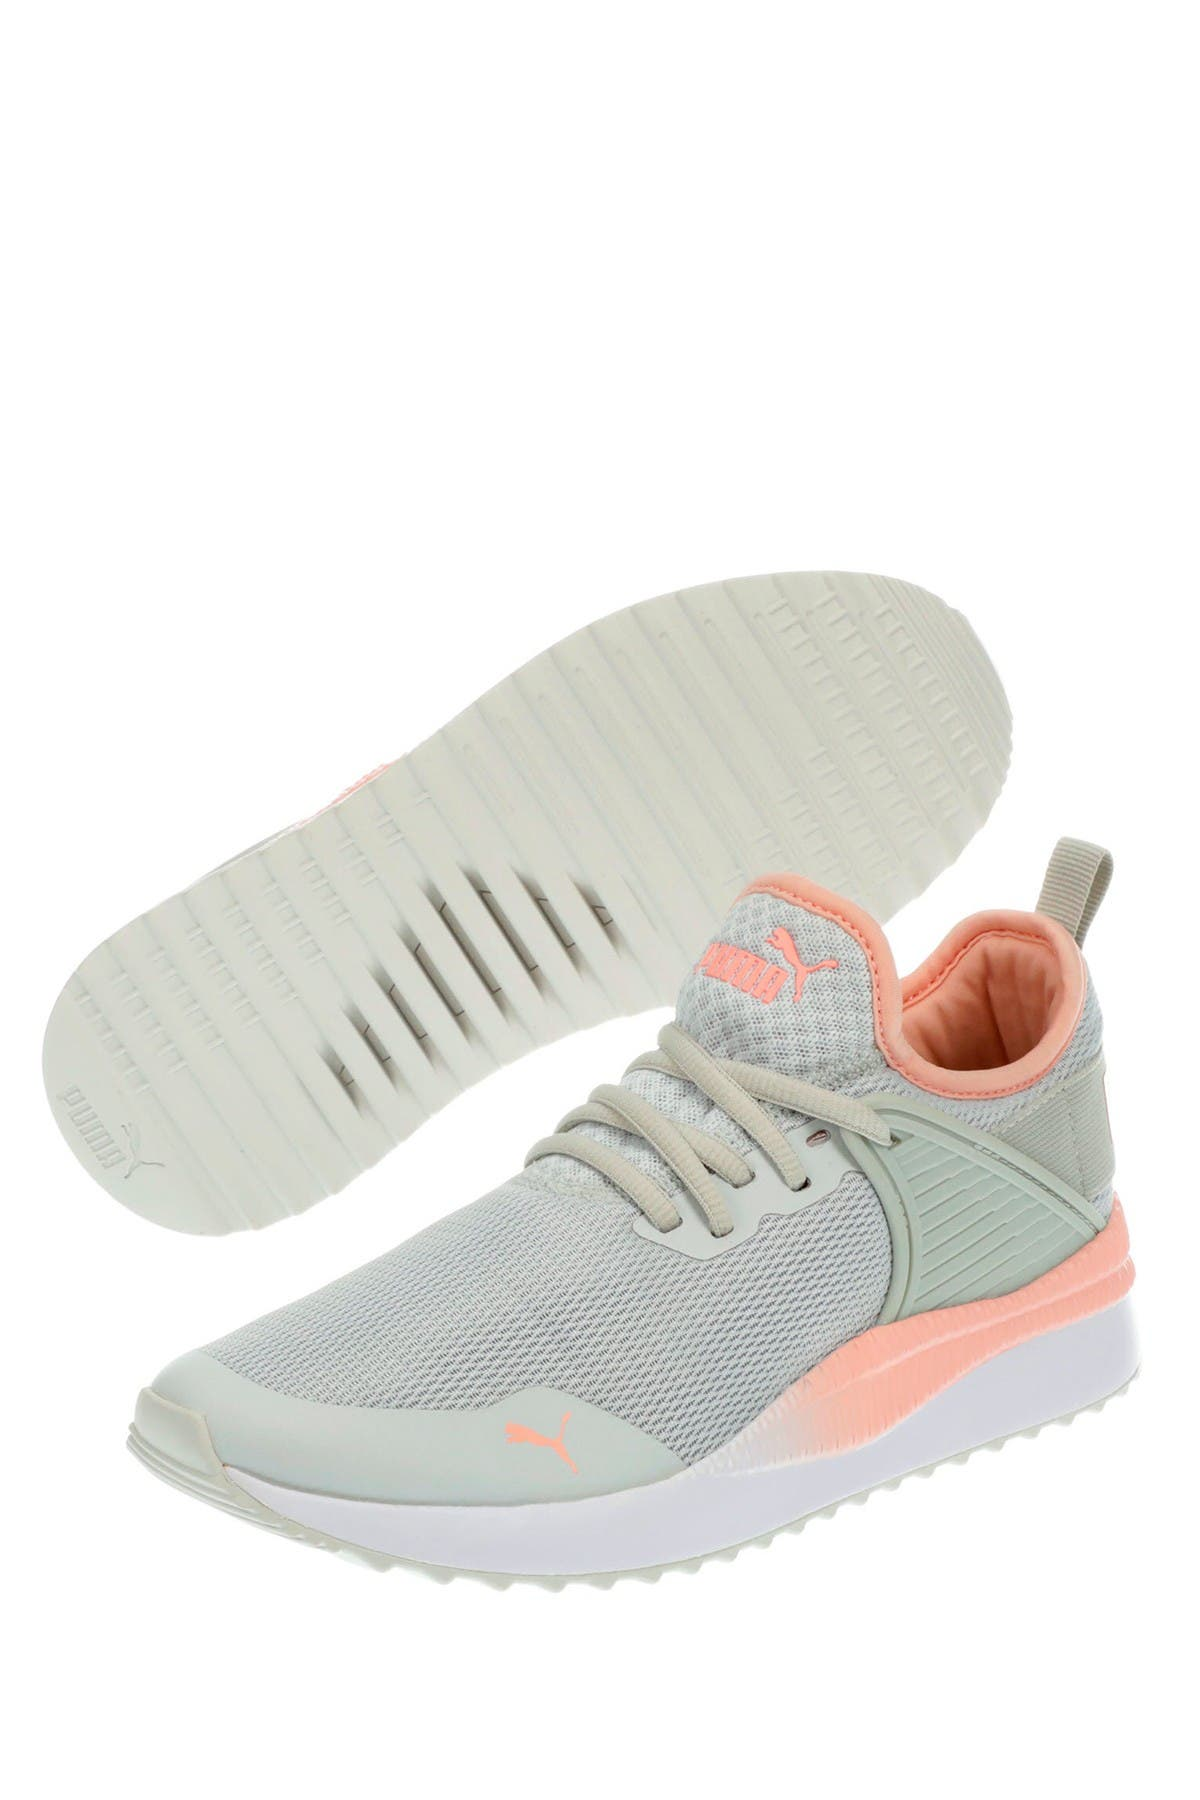 Image of PUMA Pacer Next Cage Fade Sneaker